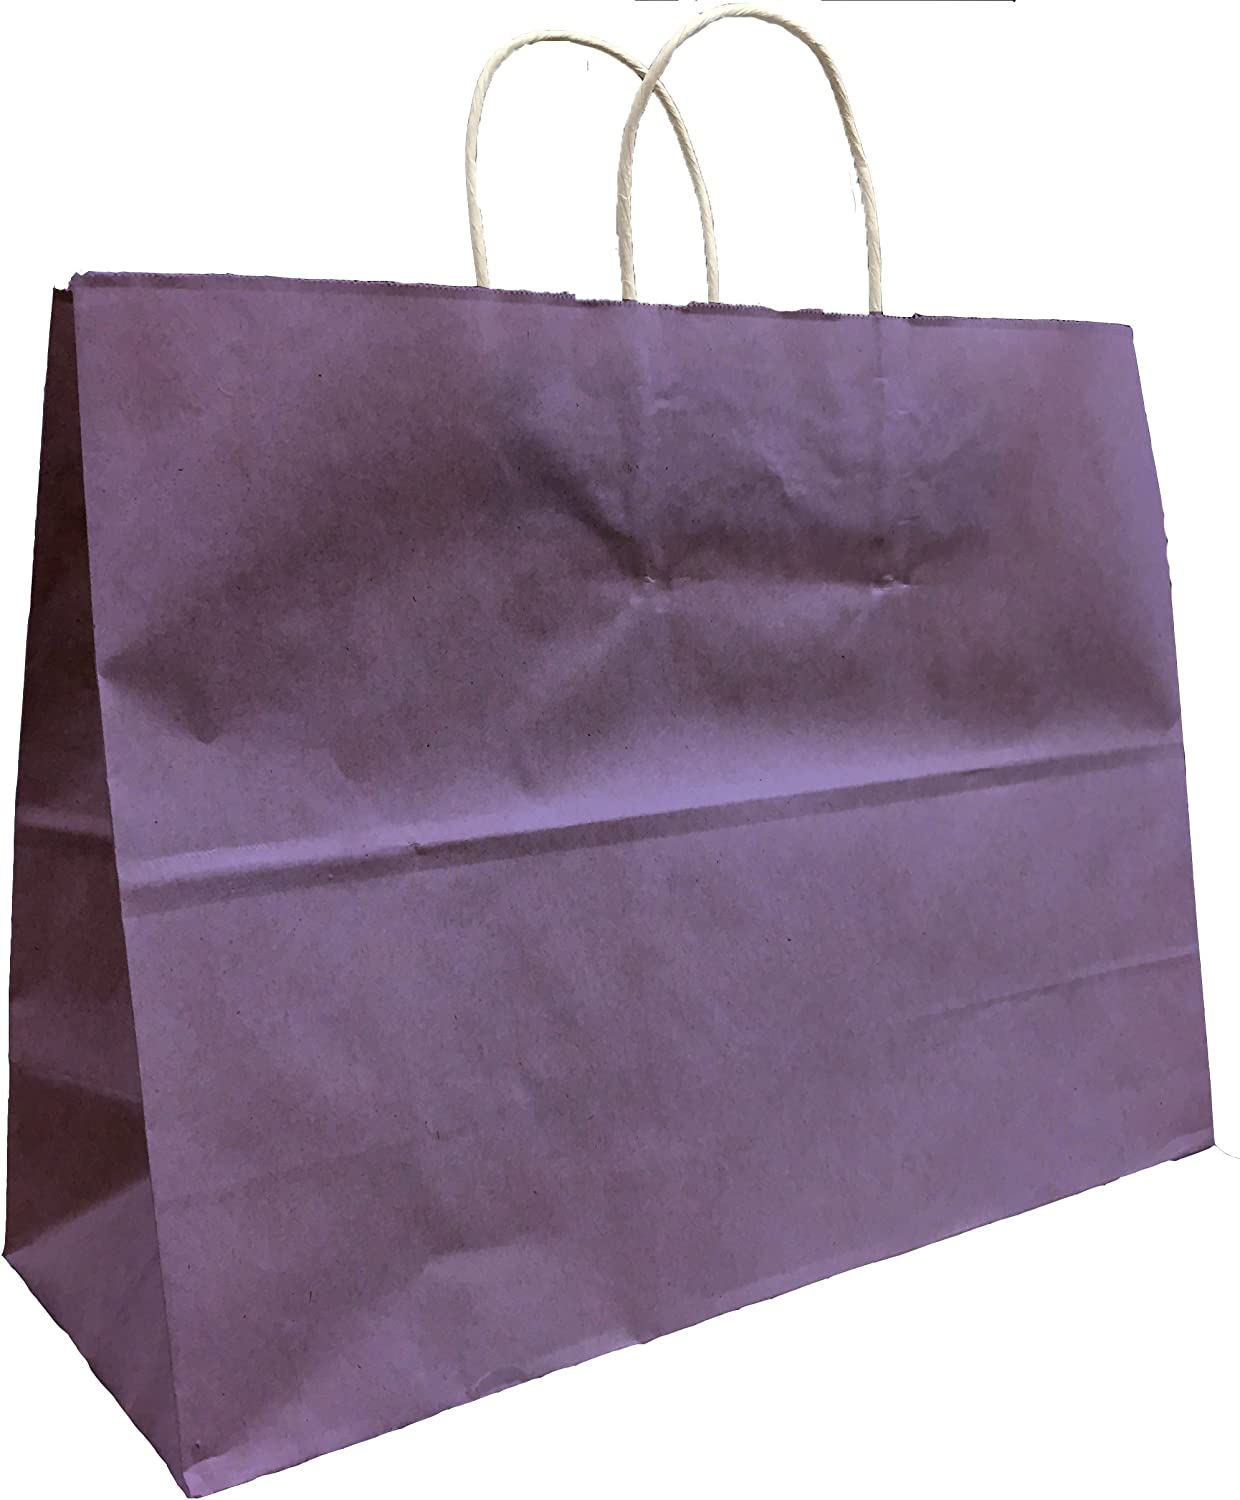 Vogue Size 16W x 12H x 6 Extra Large Kraft Paper Gift Wrap Shopping Bags, Made in USA 25 Bags Pink Bags